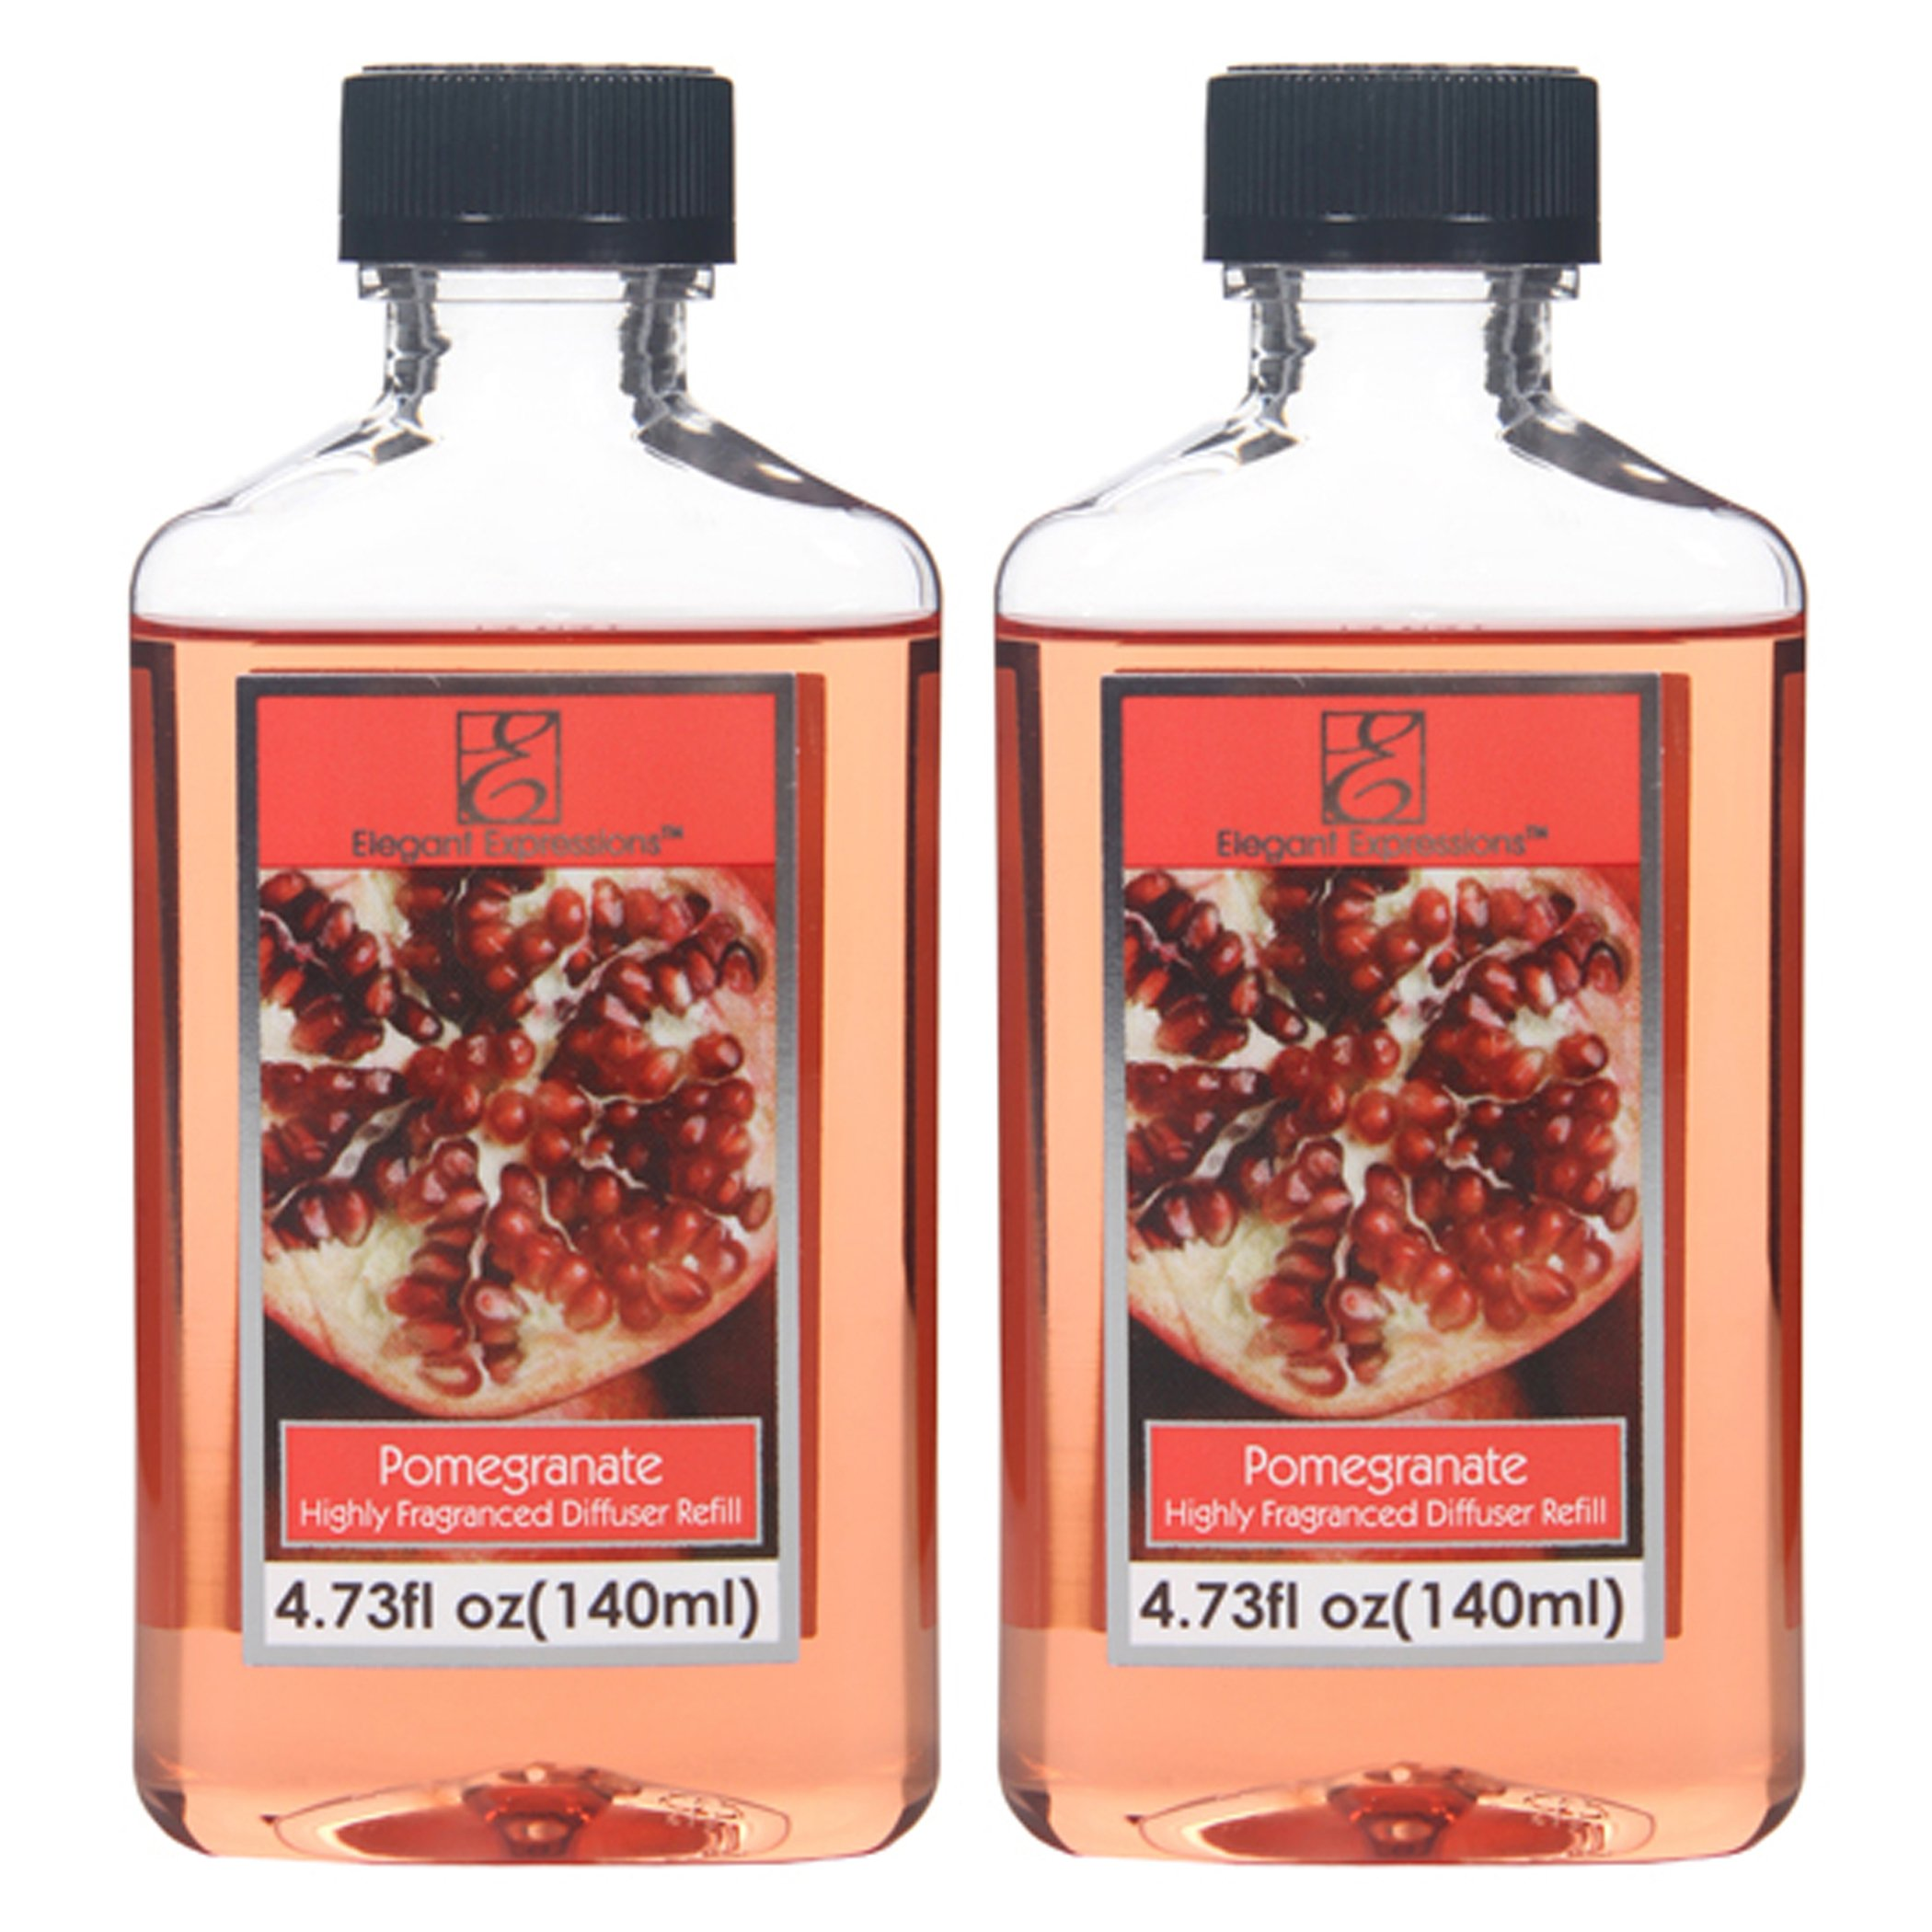 Aromatherapy Hosley Fruits & Flowers Pomegranate Scent Reed Diffuser Refill Oil- Set of 2/140 ml Each - Made in USA. Bulk Buy Ideal for Spa, Meditation, Bathroom Settings O4